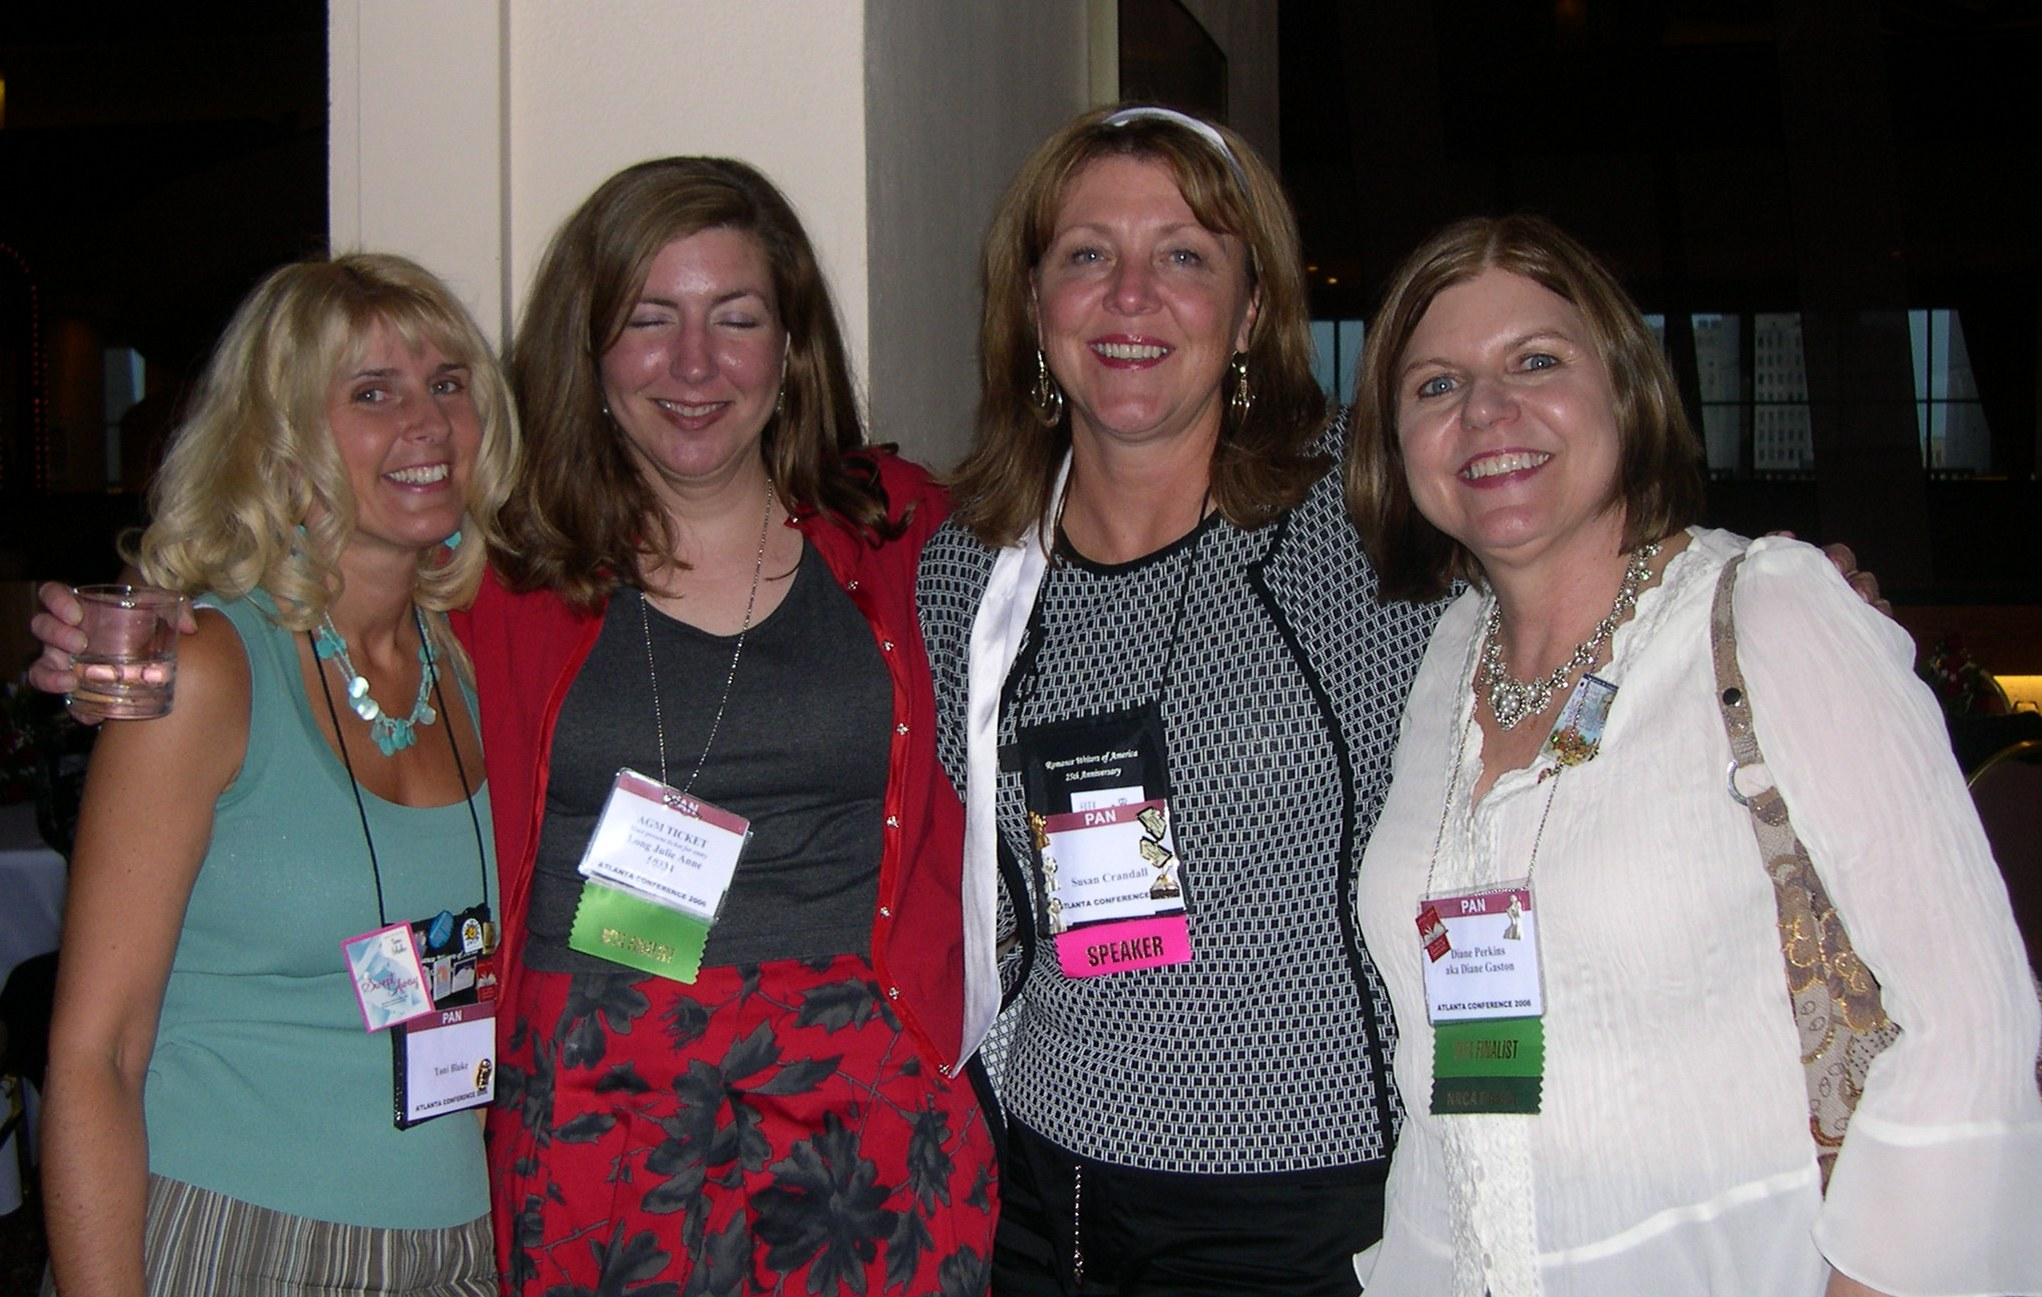 Susan and Fellow Authors